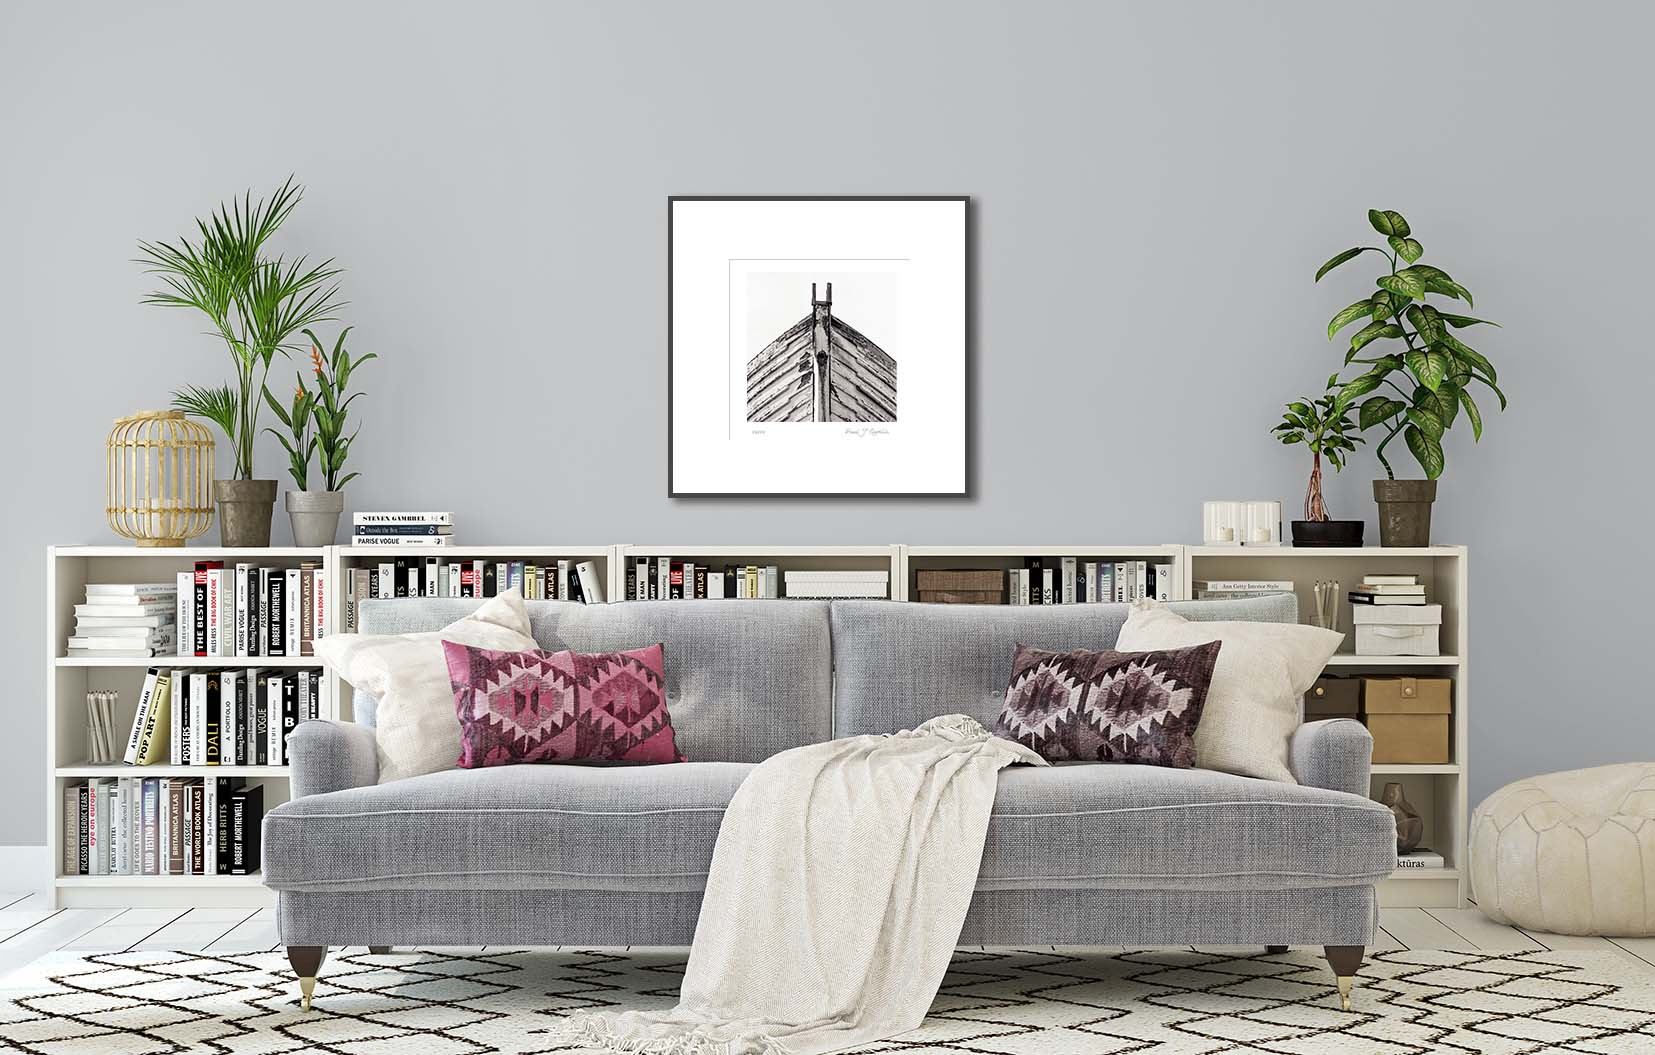 Limited edition seascapes and boat prints by fine art photographer Paul Coghlin.